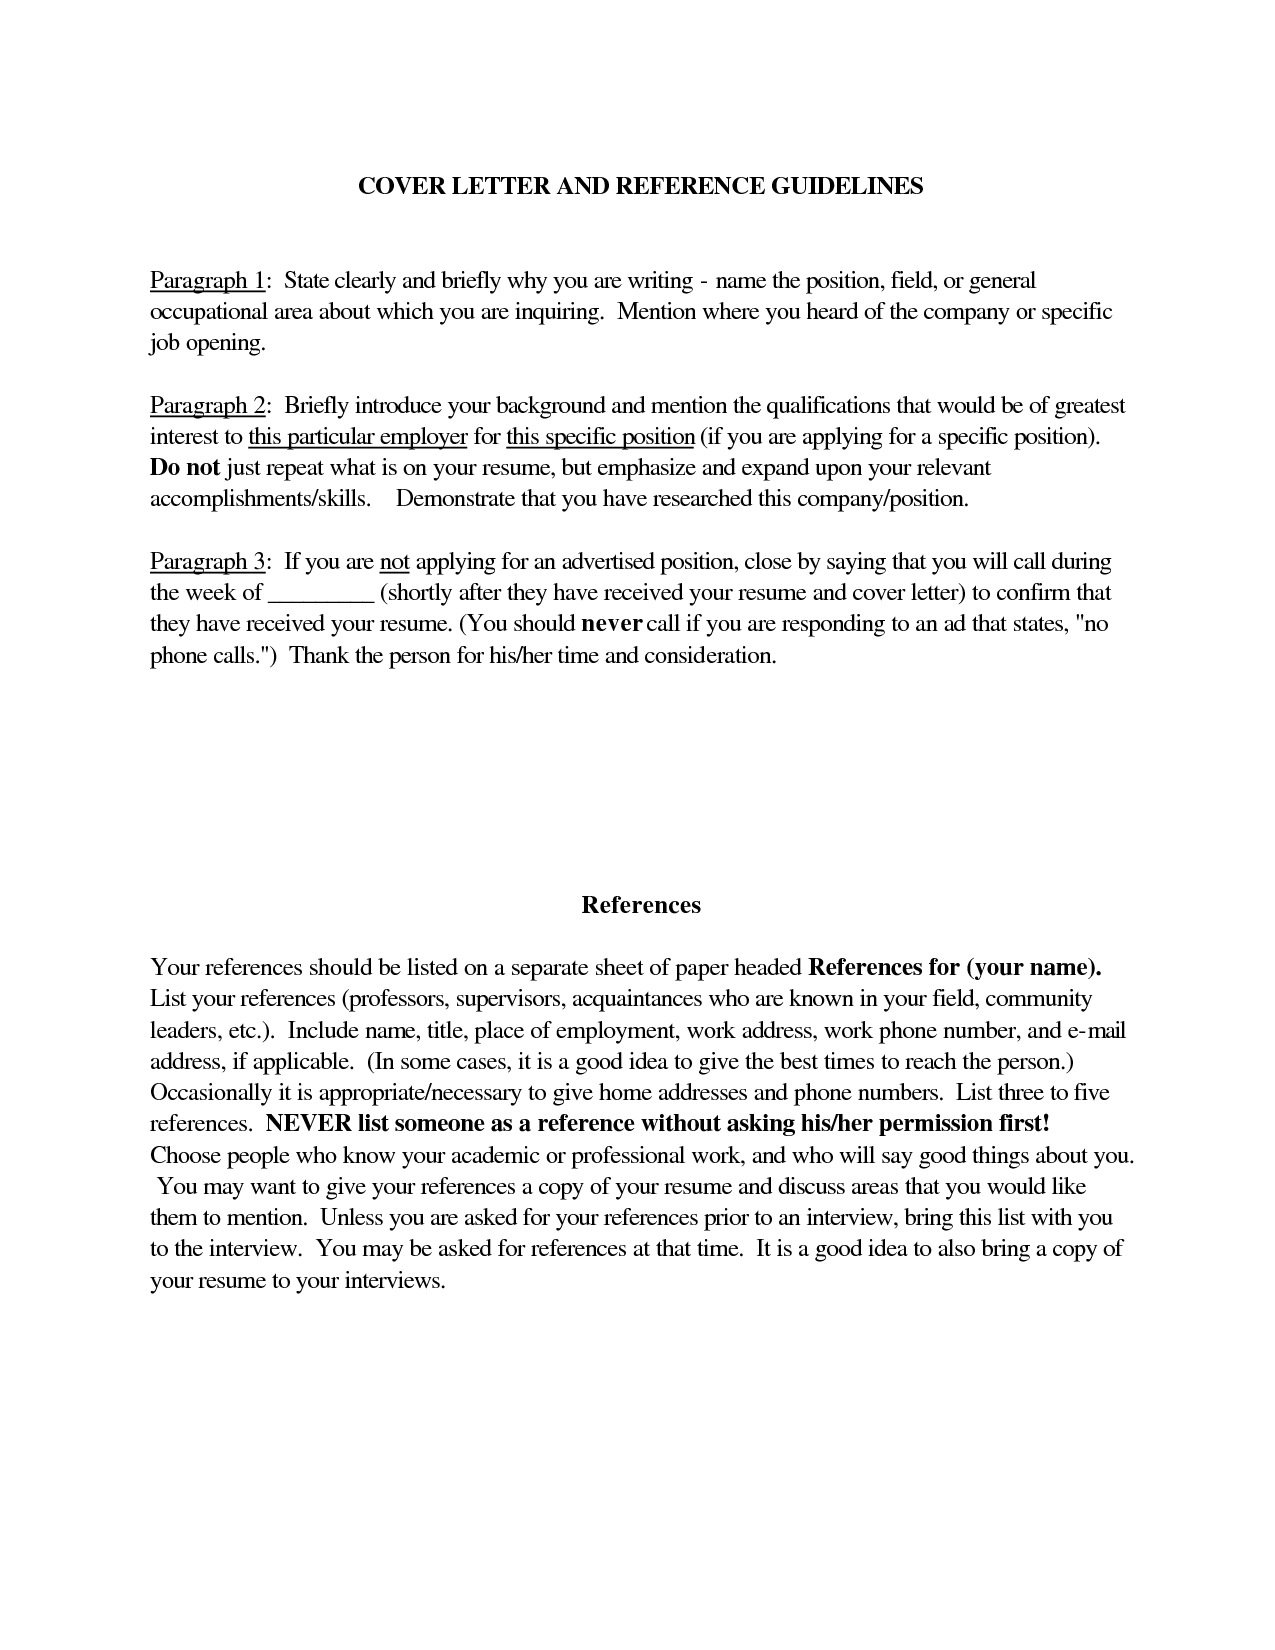 Sample Closing Paragraph Of Cover Letter  How to End a Cover Letter Sample  Complete Guide